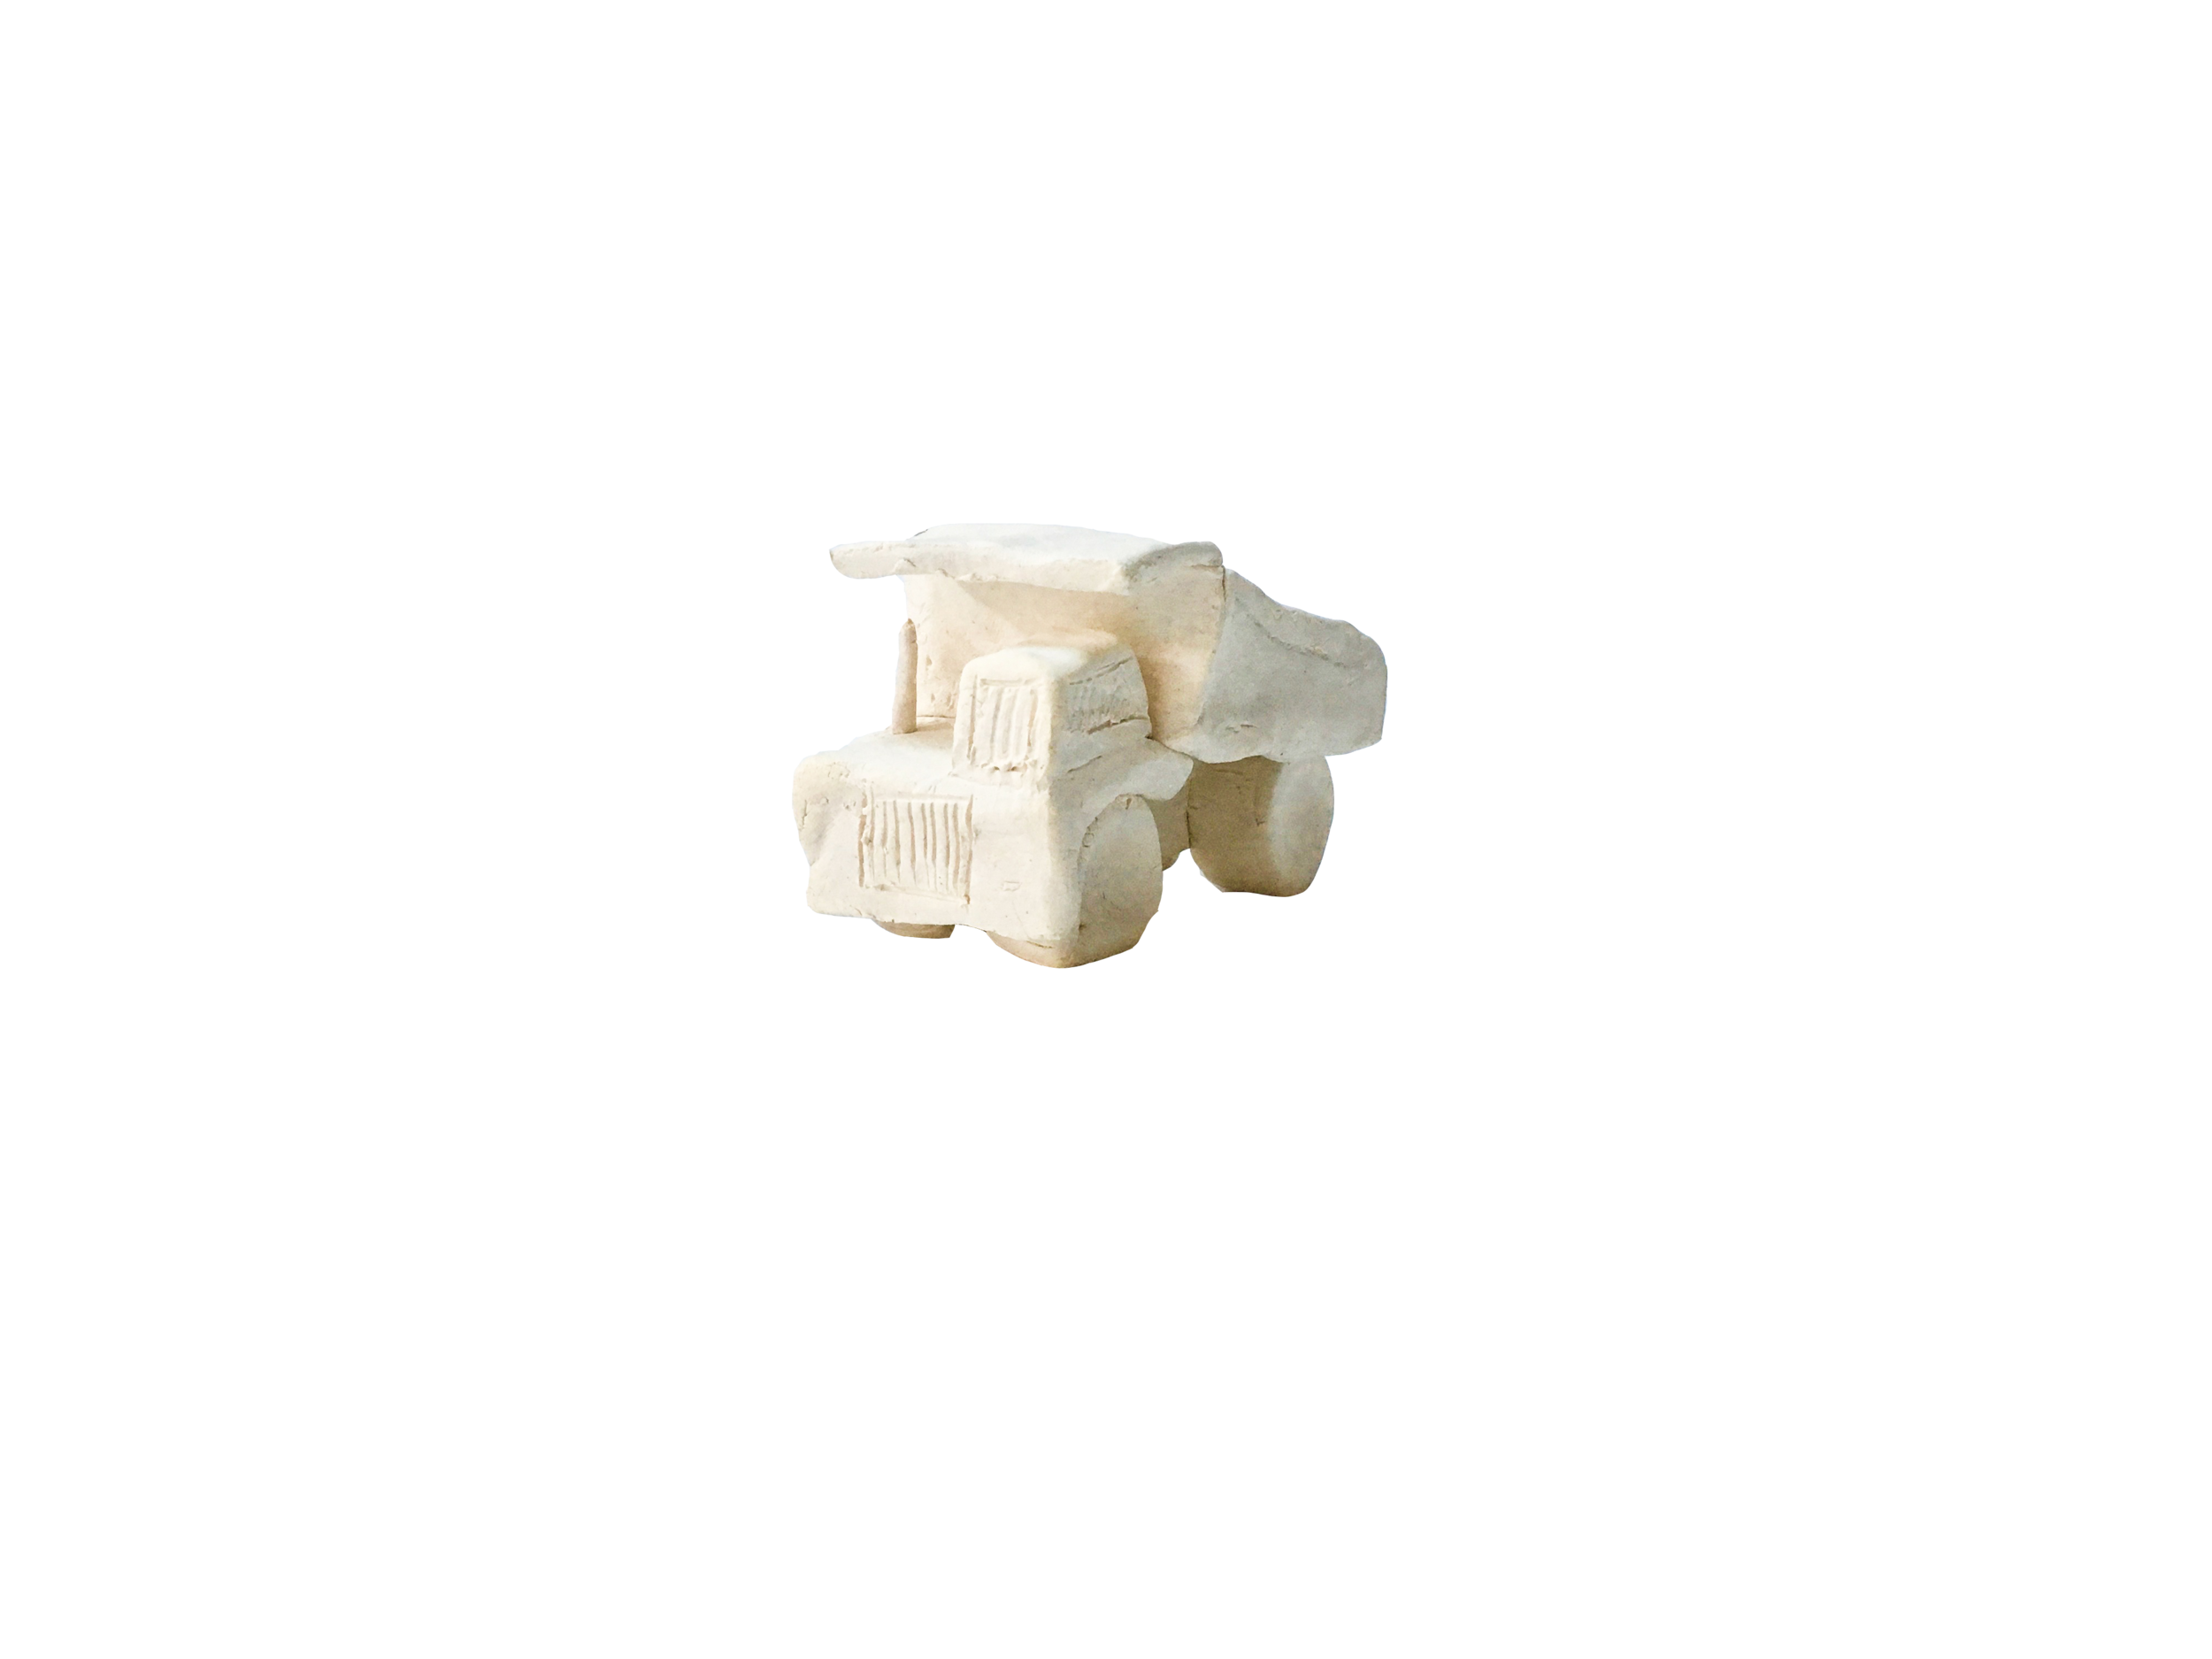 toy truck_WCCW_12.16.18_elzein.png